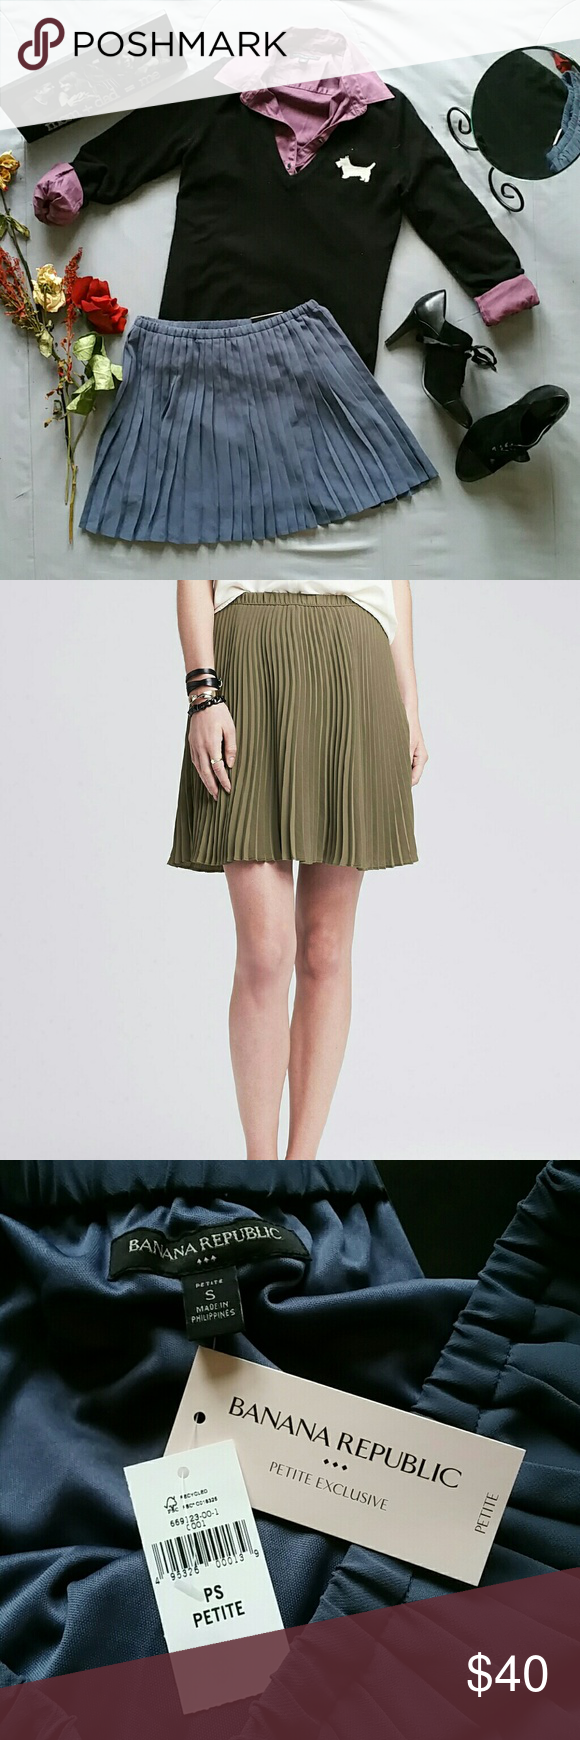 """BANANA REPUBLIC EXCLUSIVE EDITION PLEATED SKIRT *BRAND NEW WITH TAGS 2ND PHOTO IS STOCK OF SAME SKIRT IN OLIVE. I AM SELLING ONLY THE PURPLE ONE. *J. CREW SWEATER, BR BUTTON DOWN, & TAHARI BOOTIES ALL SOLD SEPARATELY!  BUNDLE & SAVE! *SHELL & LINING 100% POLYESTER  *WAIST APPROX 28"""" LYING FLAT *LENGTH APPRIX 15.5"""" *PRICE IS FIRM FOR NOW UNLESS BUNDLED *STORED IN NON-SMOKING PET FREE HOME Banana Republic Skirts Mini"""